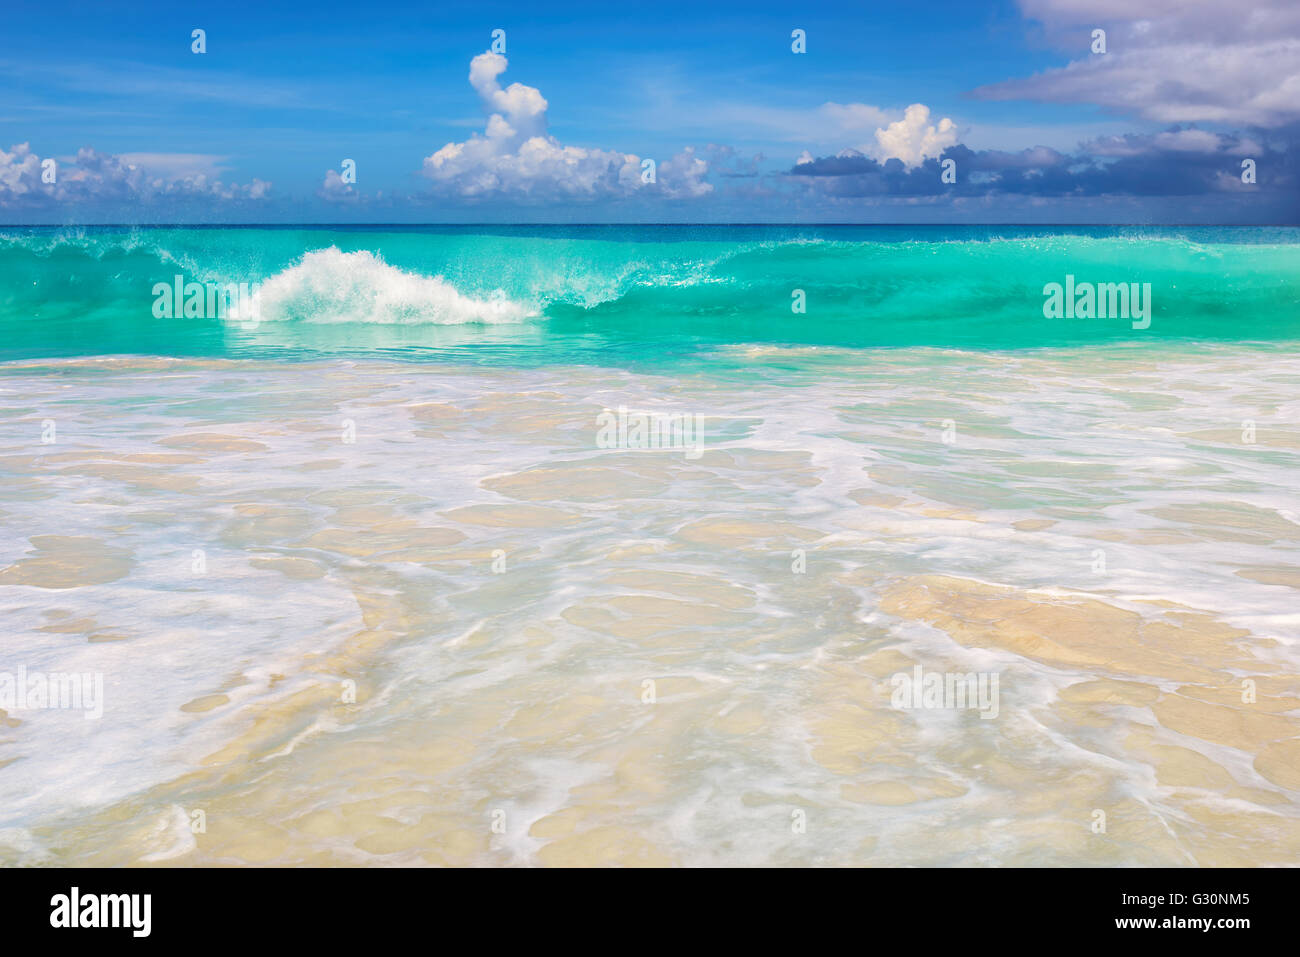 Beach, wave and clouds - Stock Image